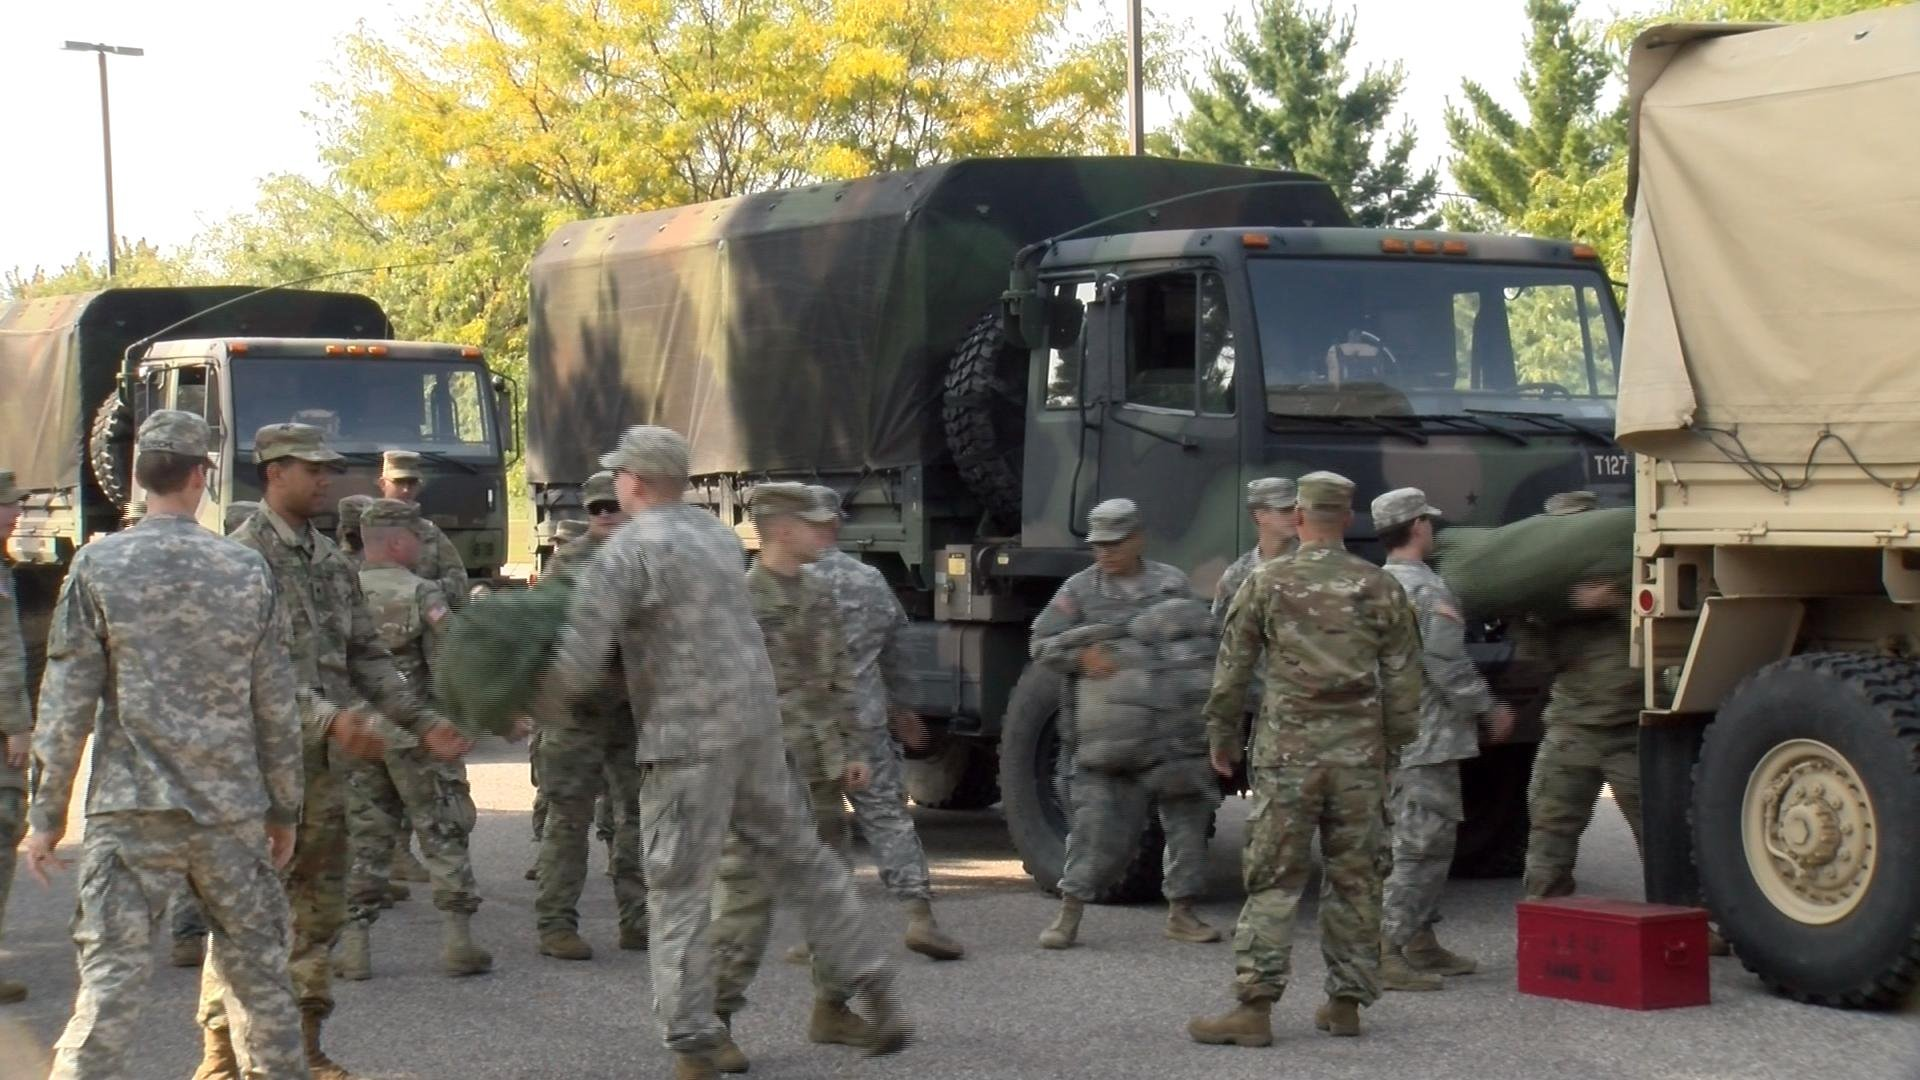 Members of the Wisconsin National Guard preparing to leave for Florida on Monday from Camp Williams